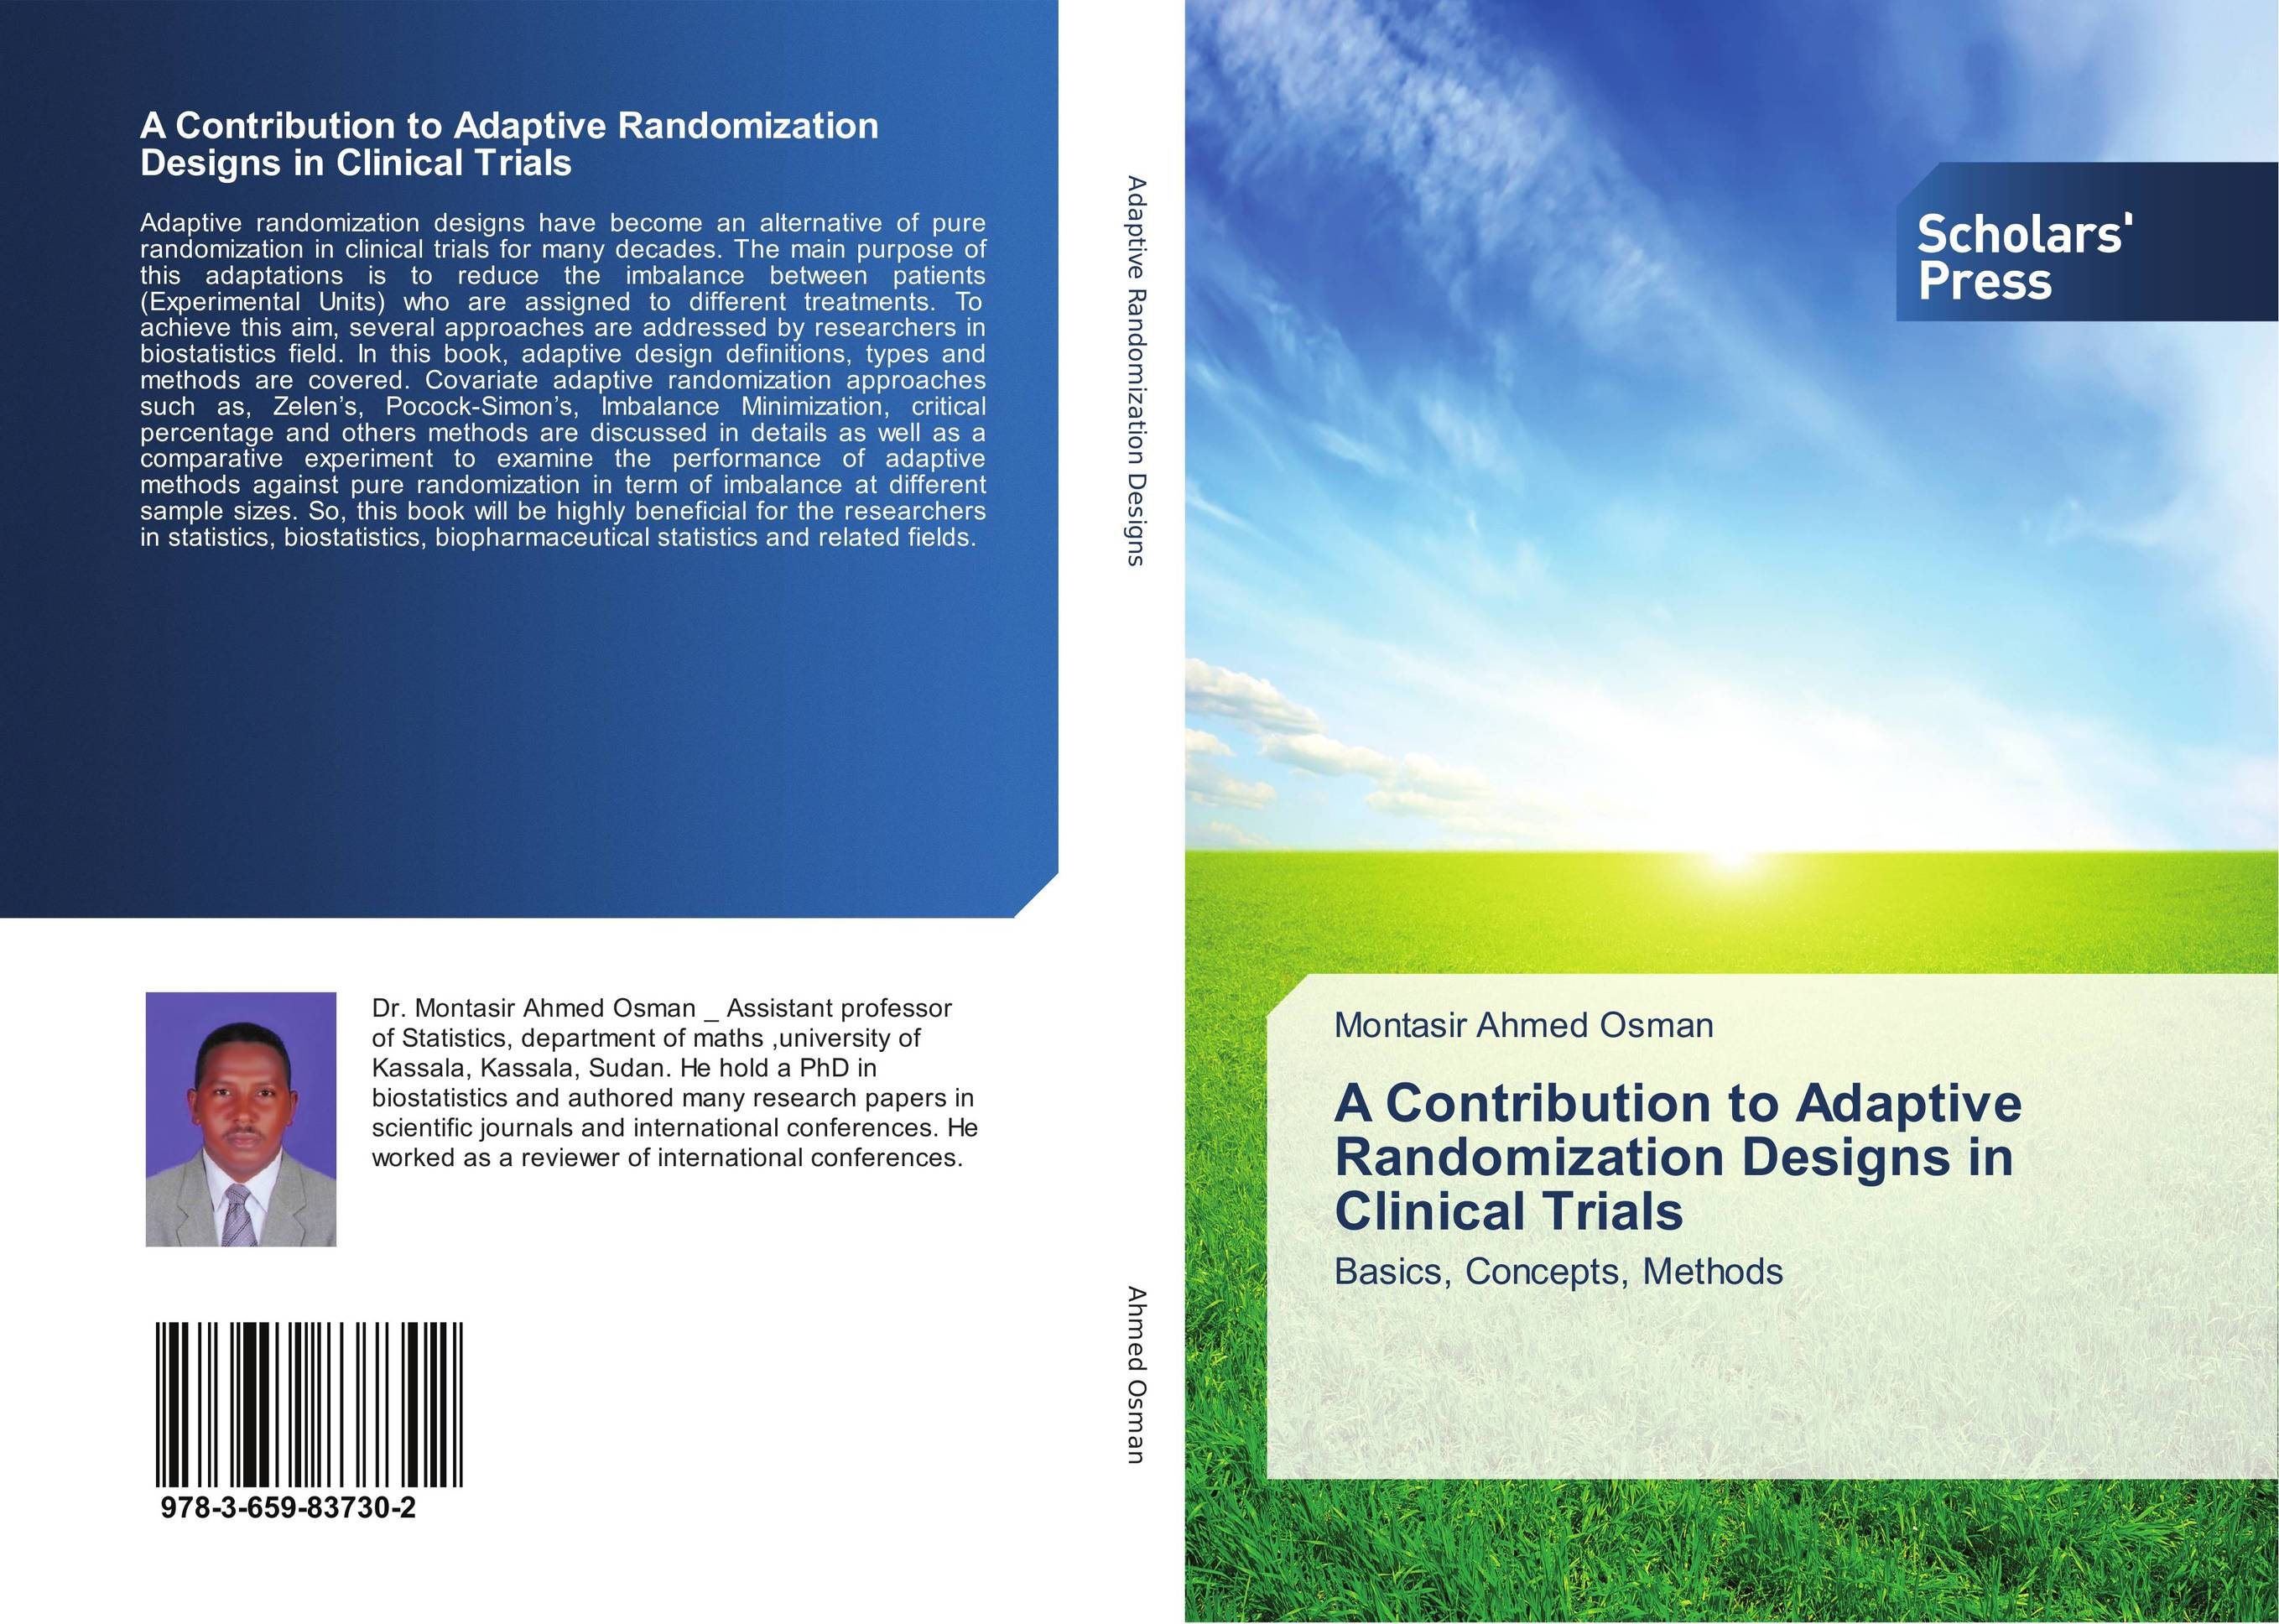 A Contribution to Adaptive Randomization Designs in Clinical Trials n j patil r h chile and l m waghmare design of adaptive fuzzy controllers